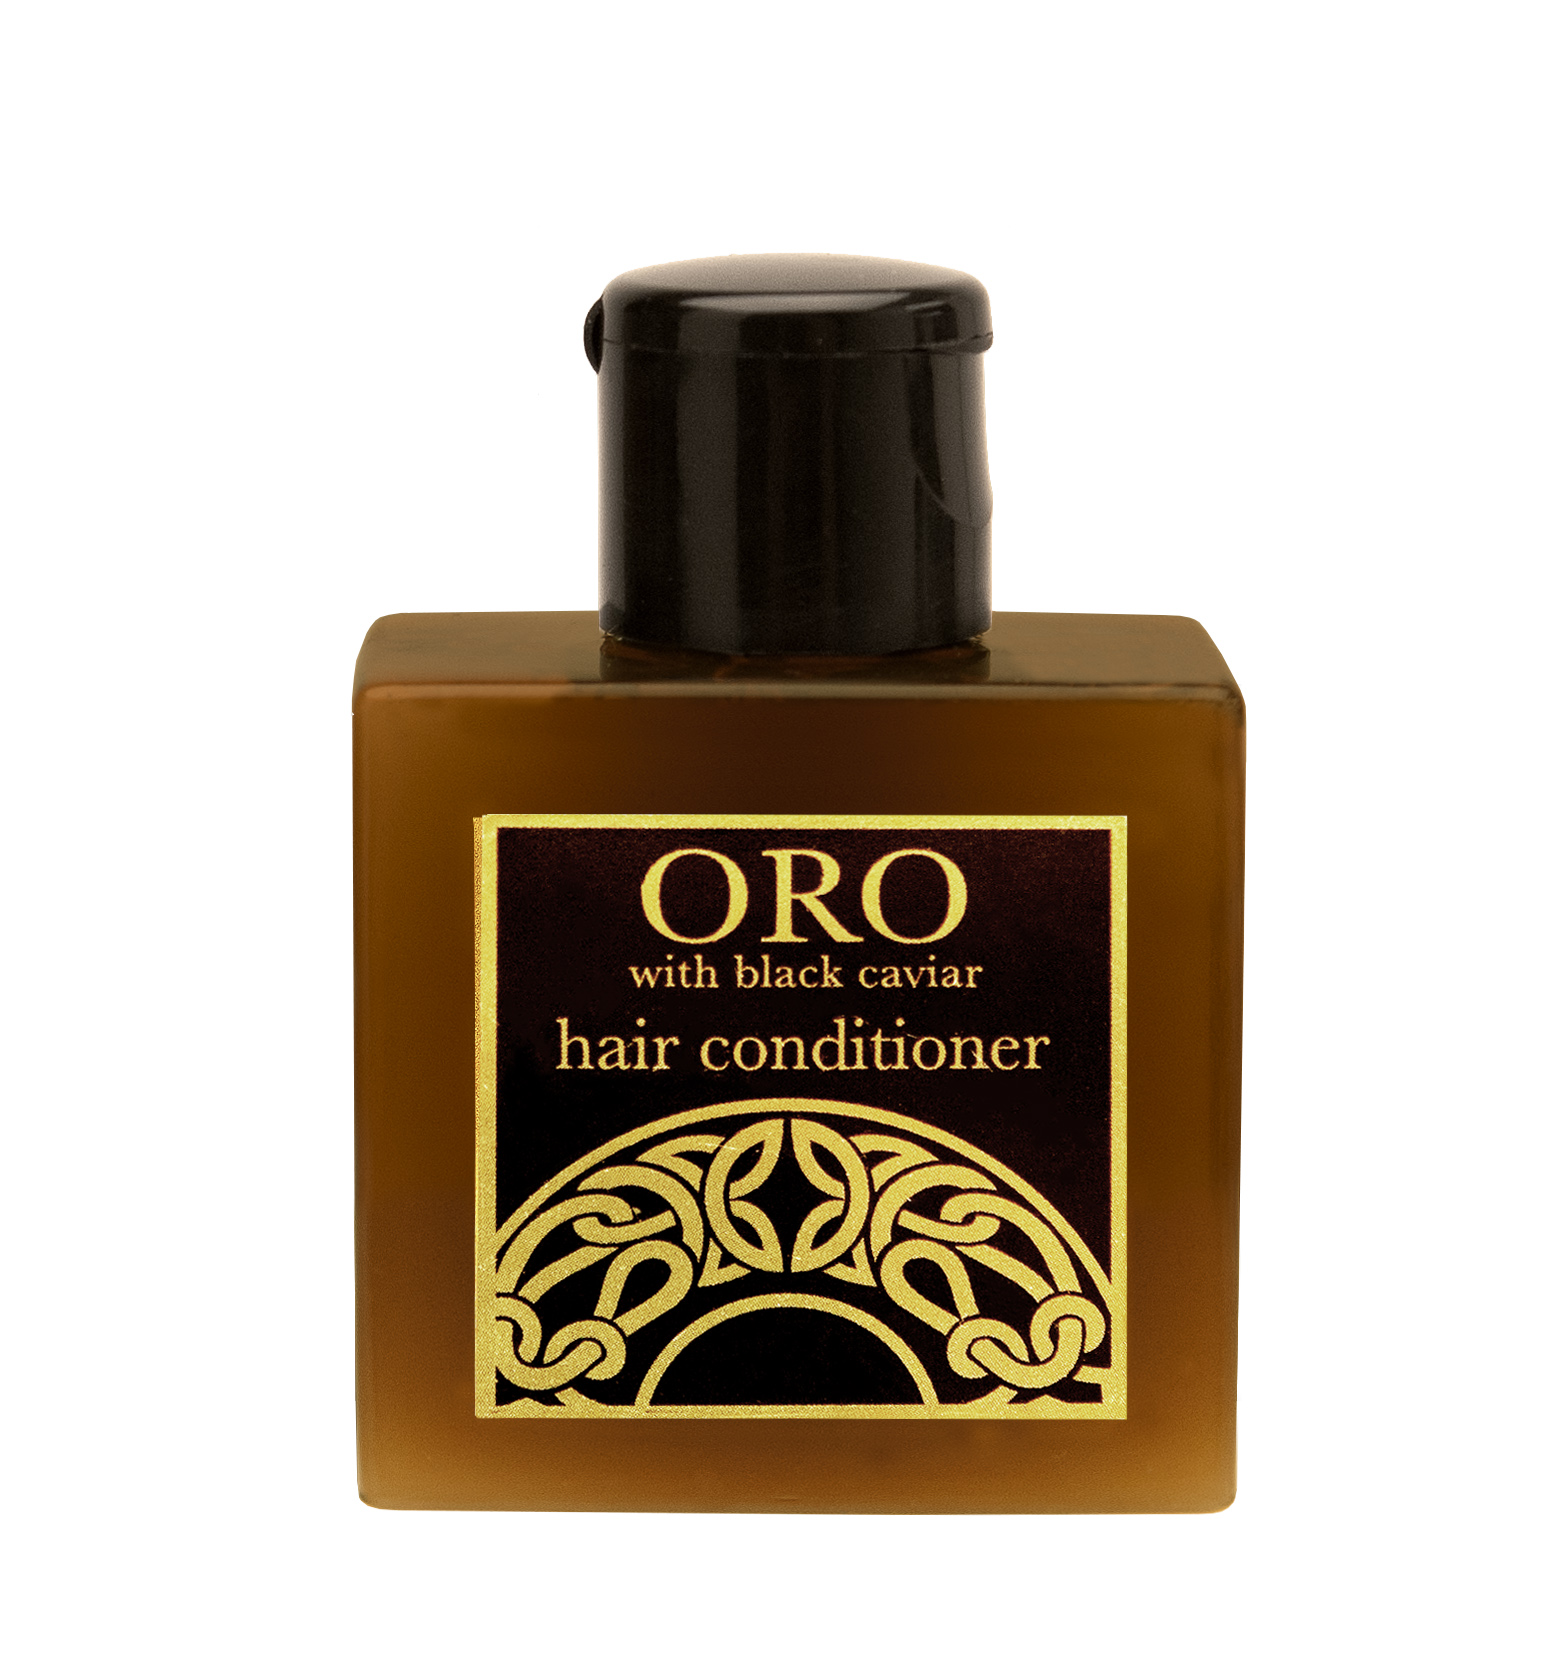 oro_hair_conditioner